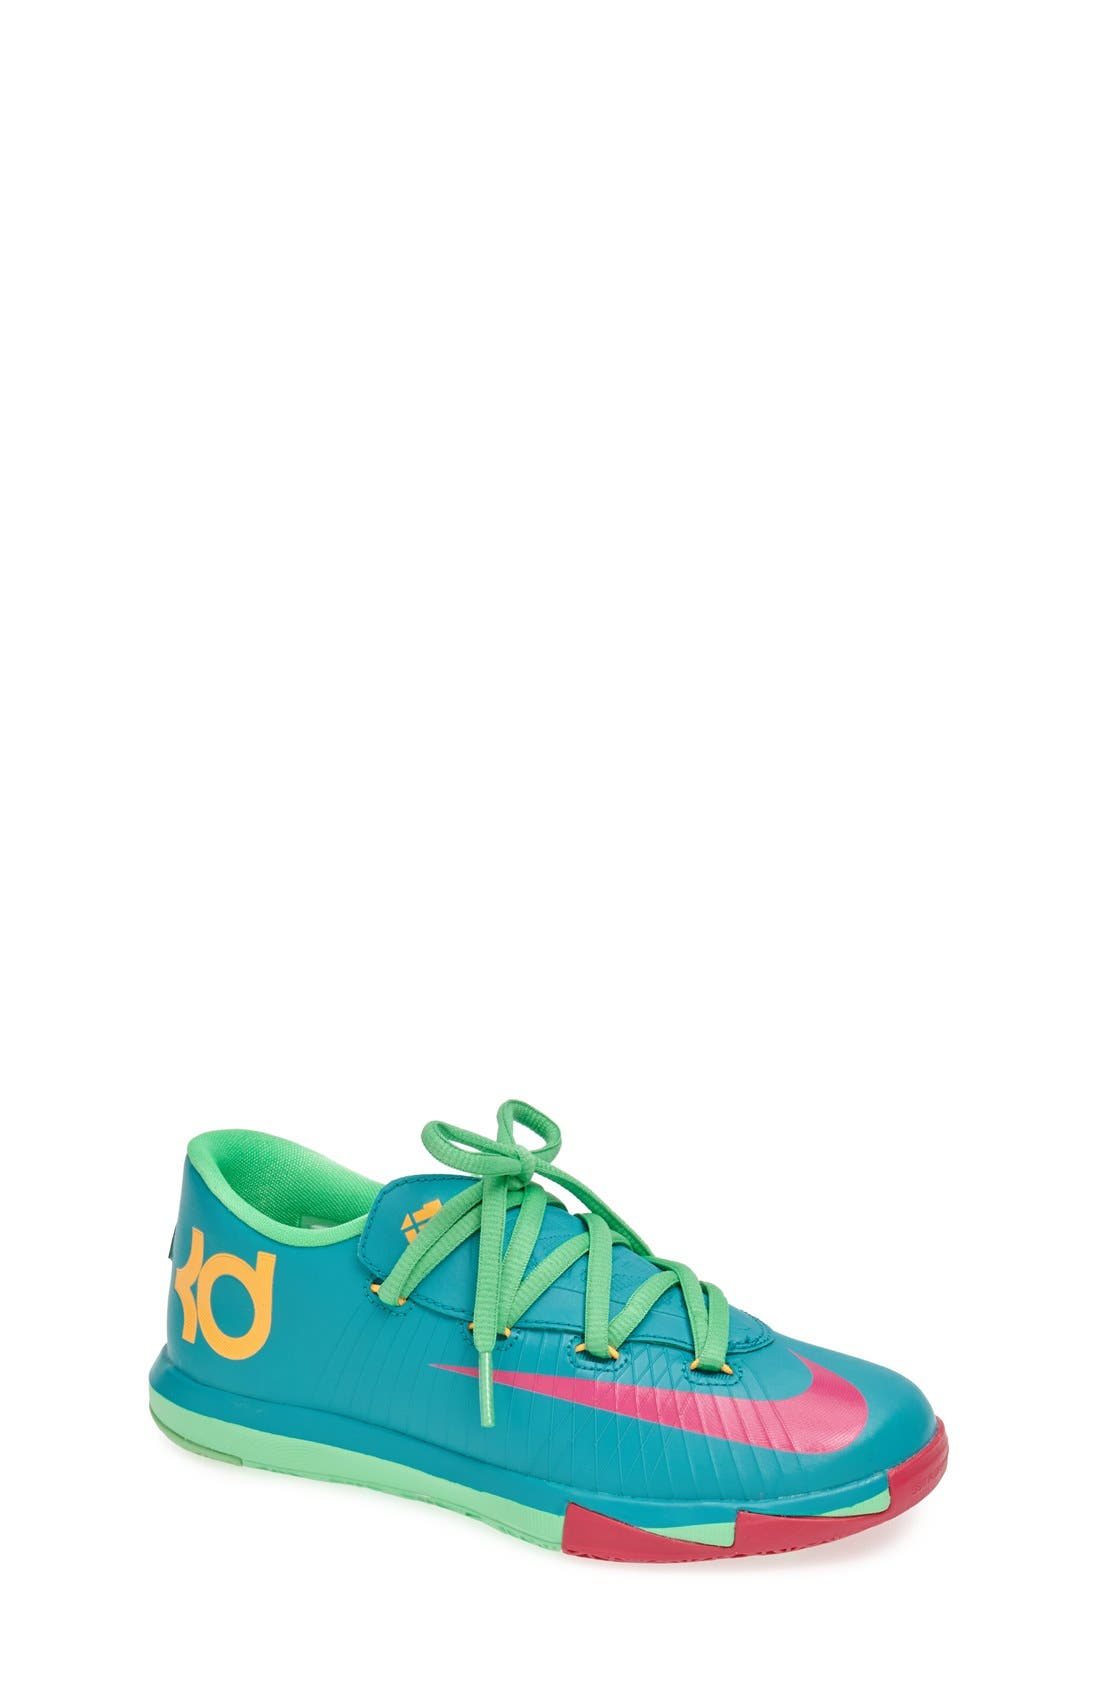 Main Image - Nike 'KD VI' Basketball Shoe (Walker, Toddler & Little Kid)